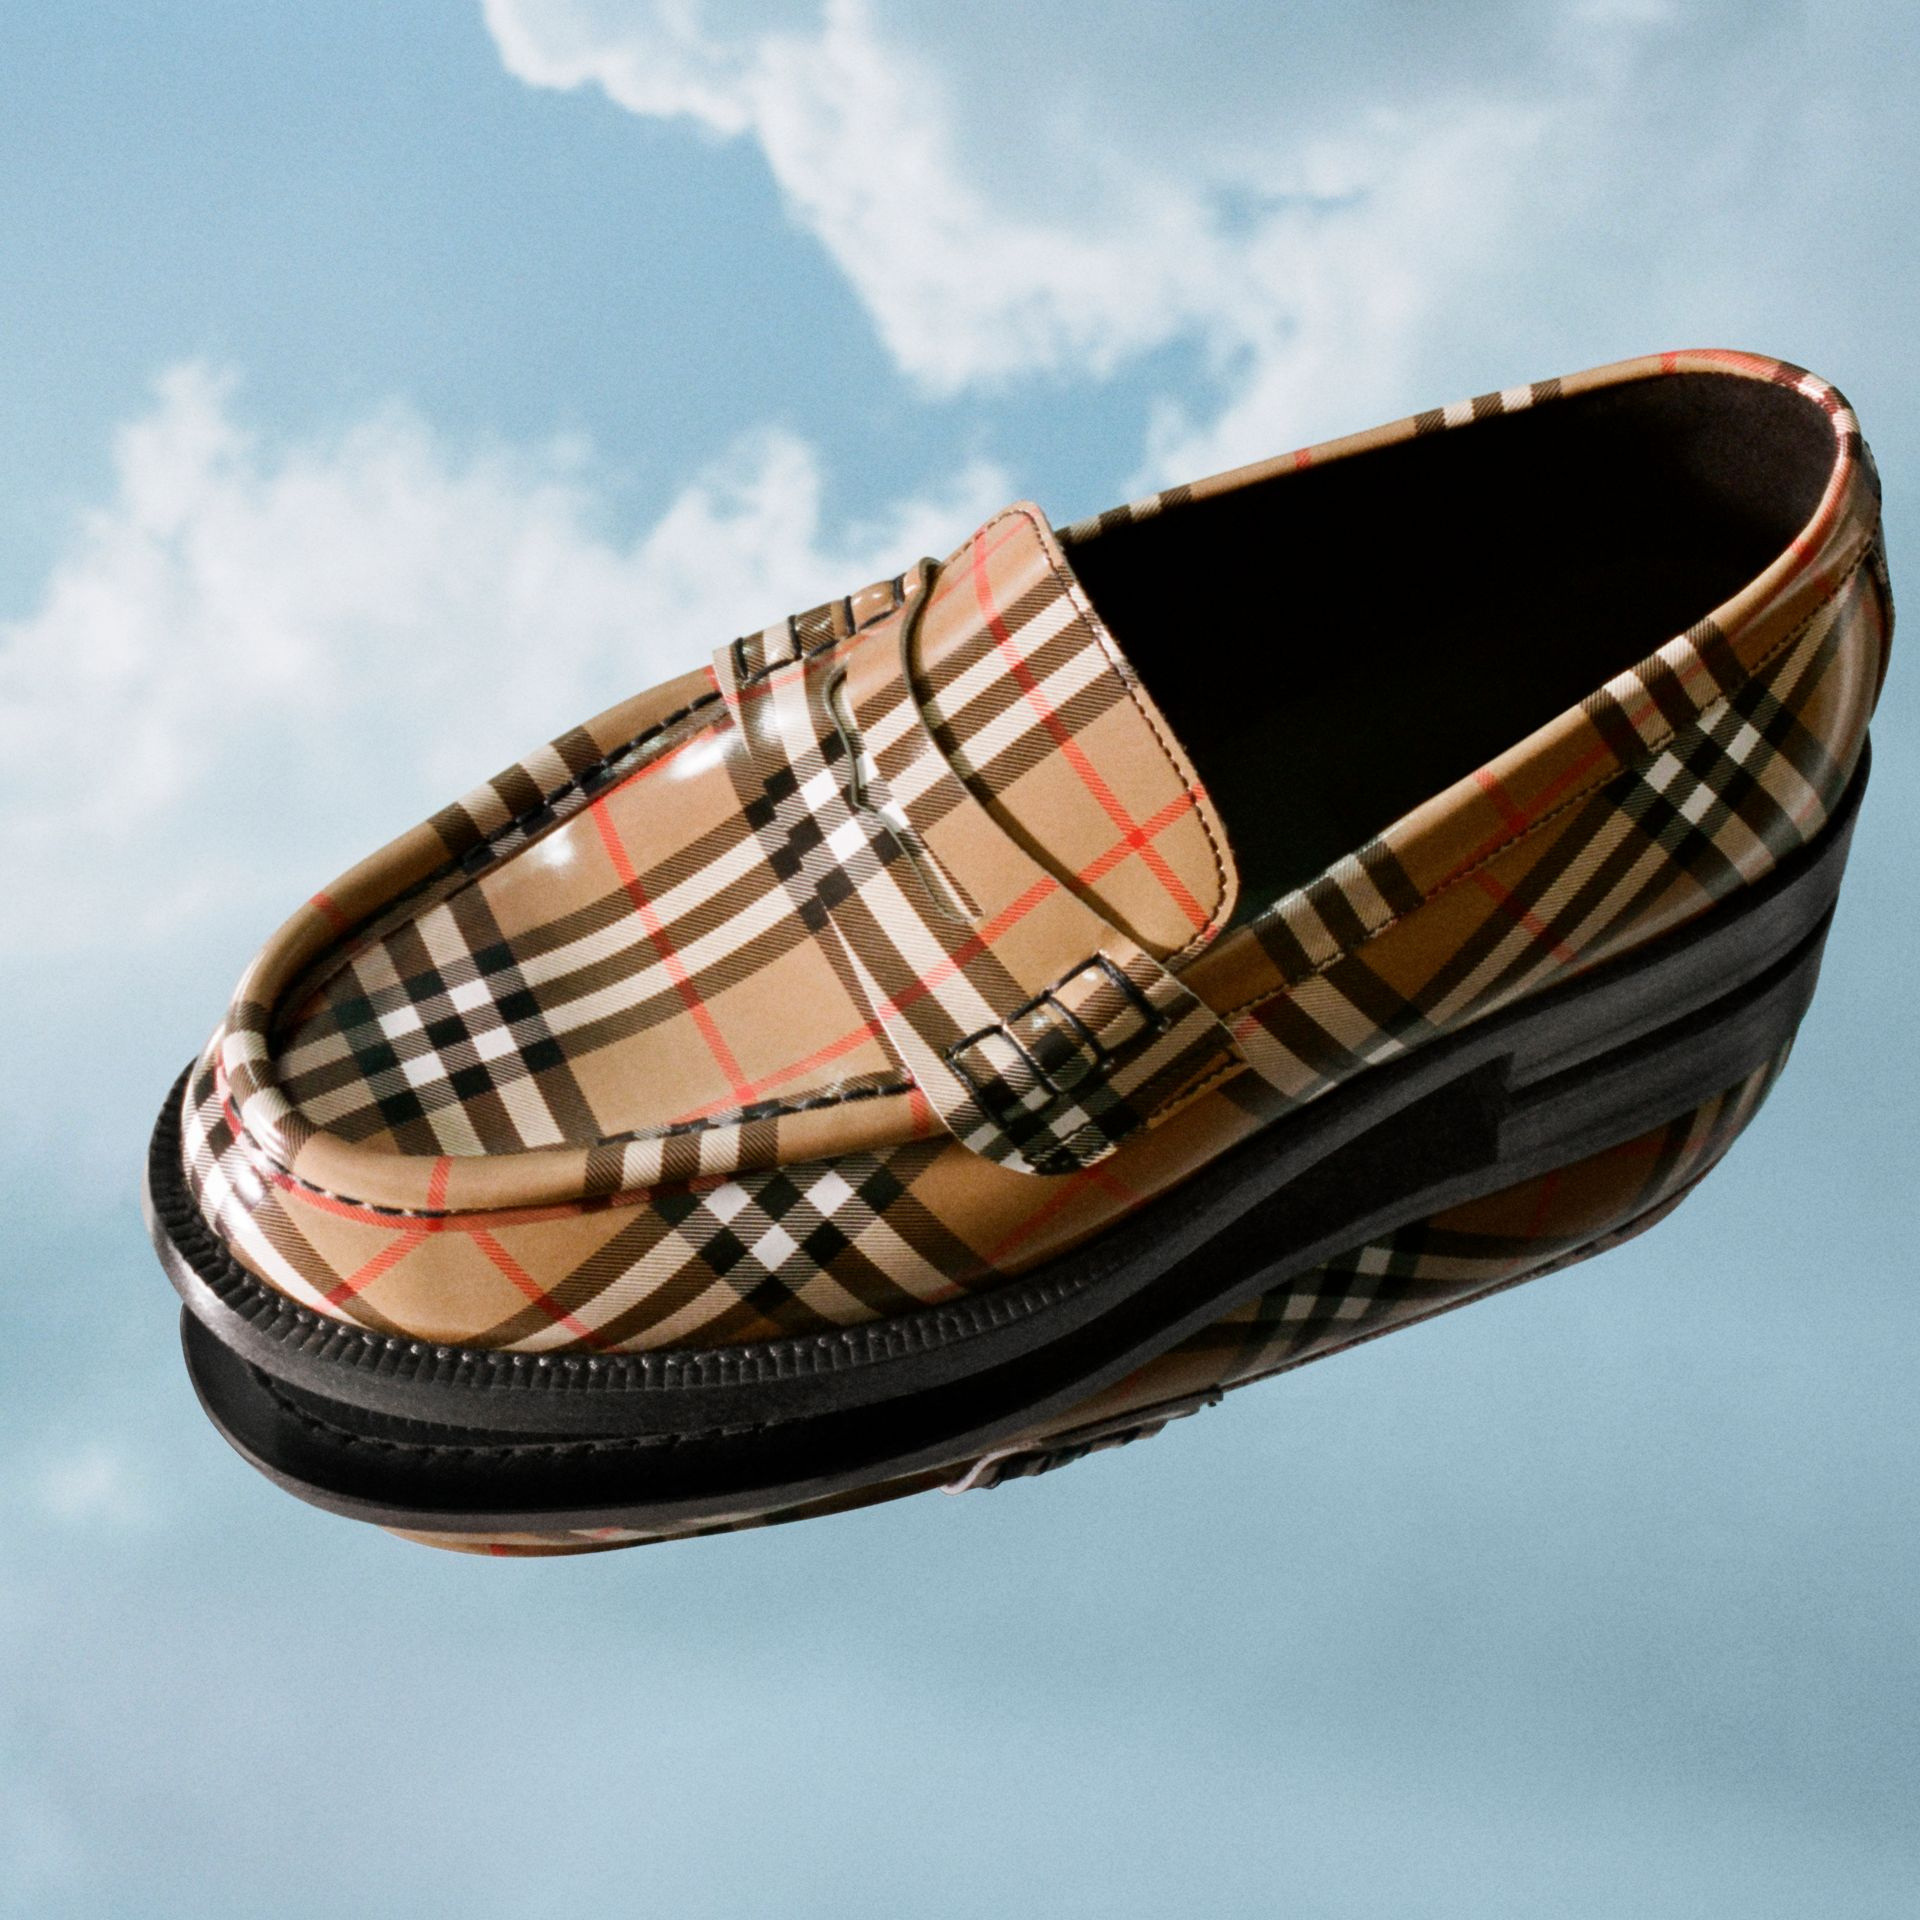 Gosha x Burberry Check Leather Loafers in Antique Yellow - Men | Burberry - gallery image 1